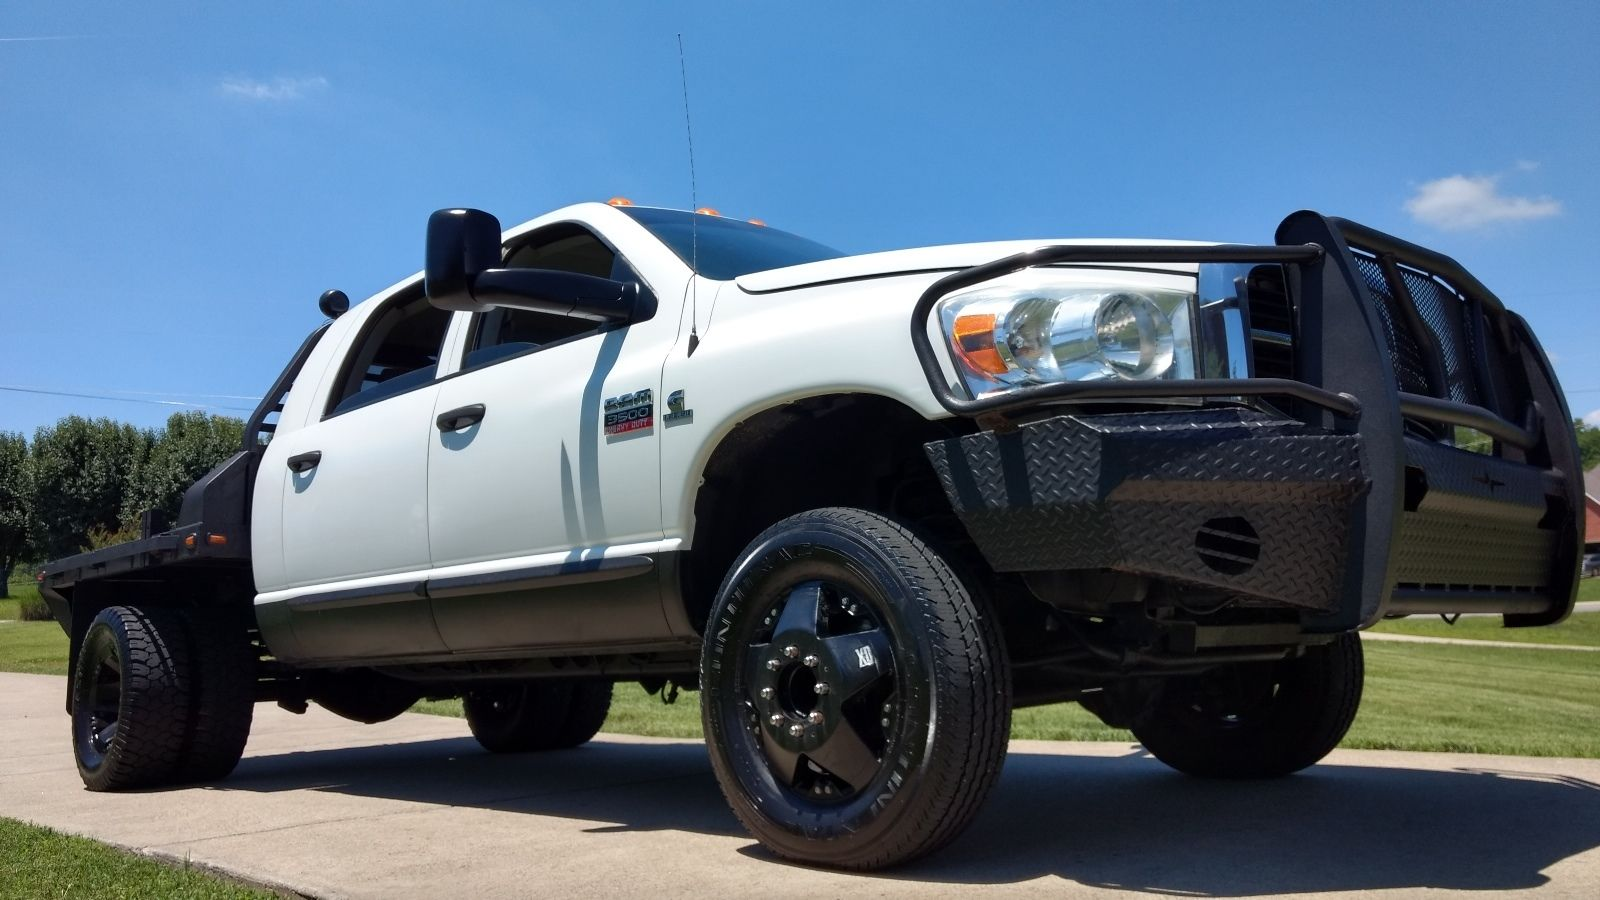 Ram 2500 For Sale >> Lift bed 2008 Dodge Ram 3500 lifted for sale